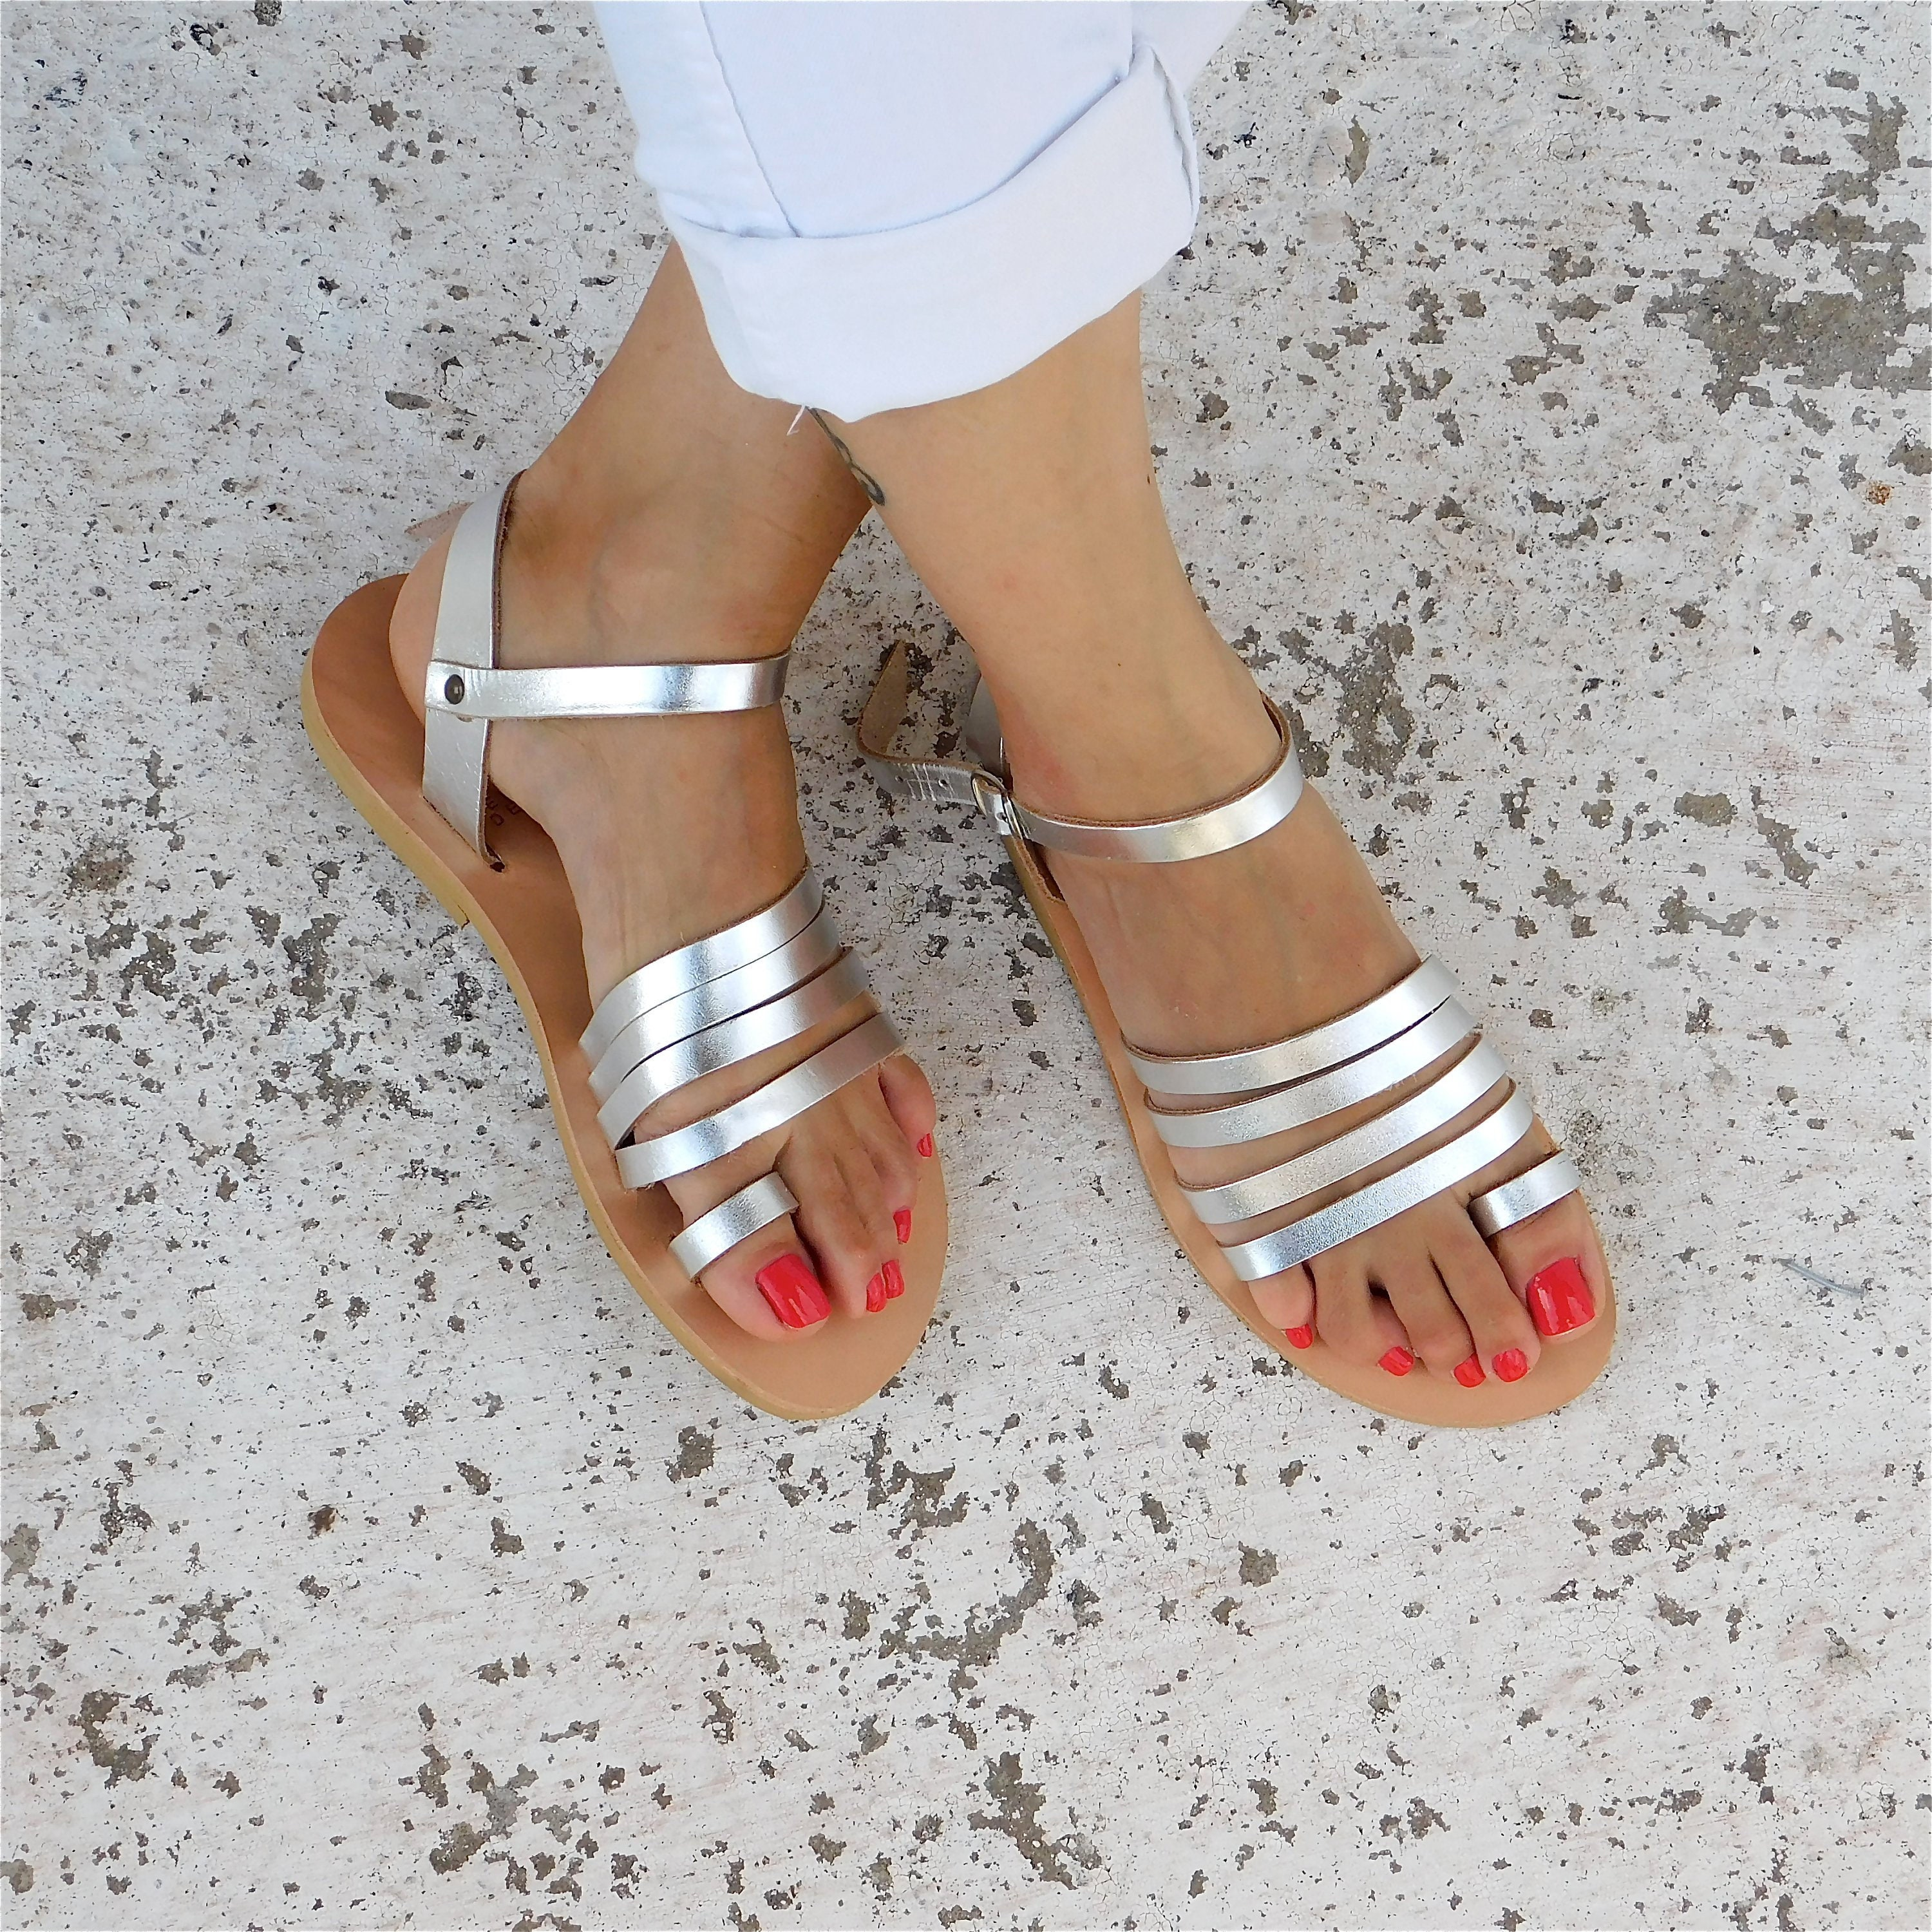 Comfortable Sandals, Strappy sandals, Greek Sandals, BOHO Sandals, Wedding sandals, Silver Sandals, Metallic Leather sandals, Leather flats